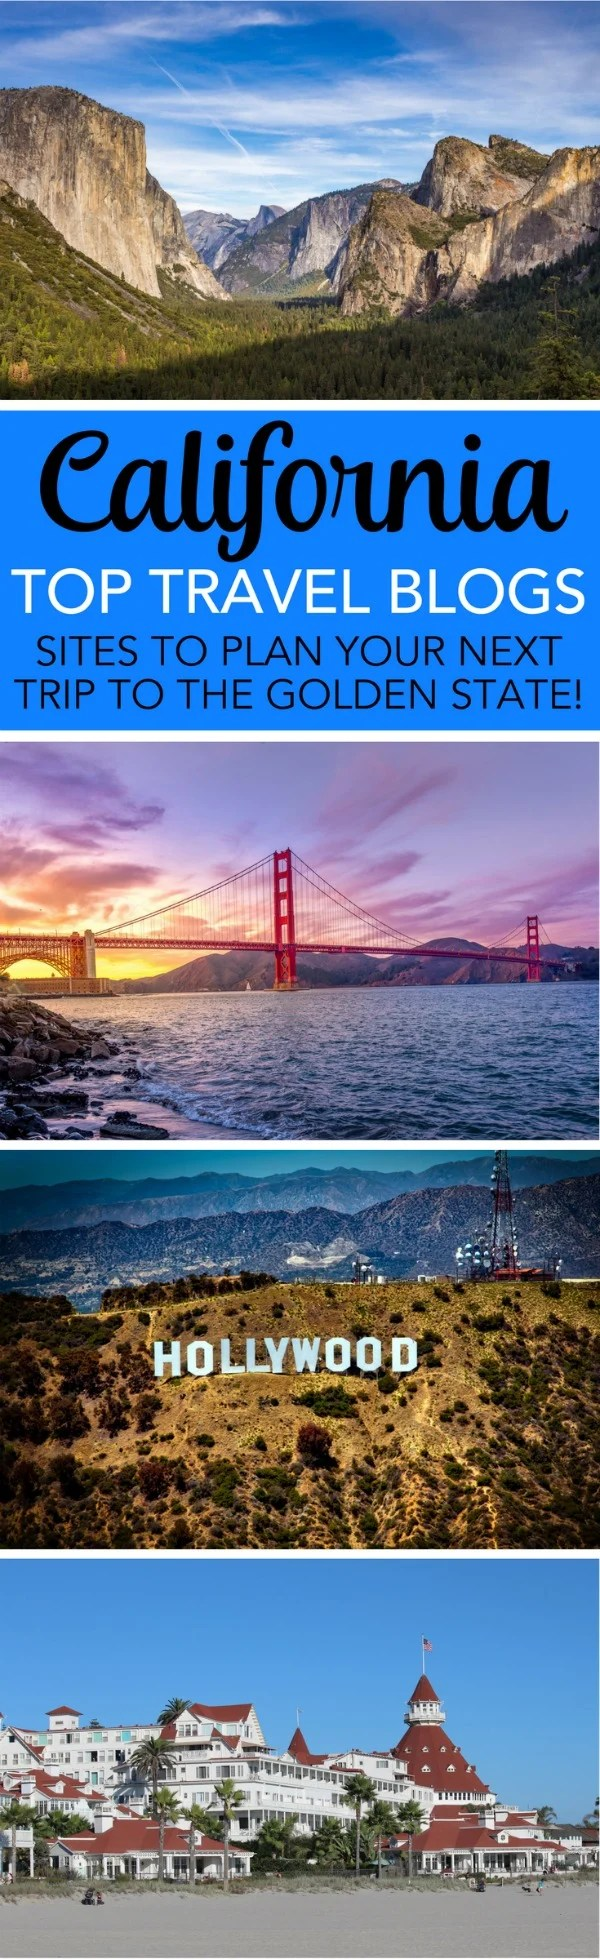 Top California Travel Blogs: Planning a trip to the Golden State? These top California-based writer sites cover both Northern and Southern California travel destinations - national parks, theme parks, road trips, city guides, beaches, and more.